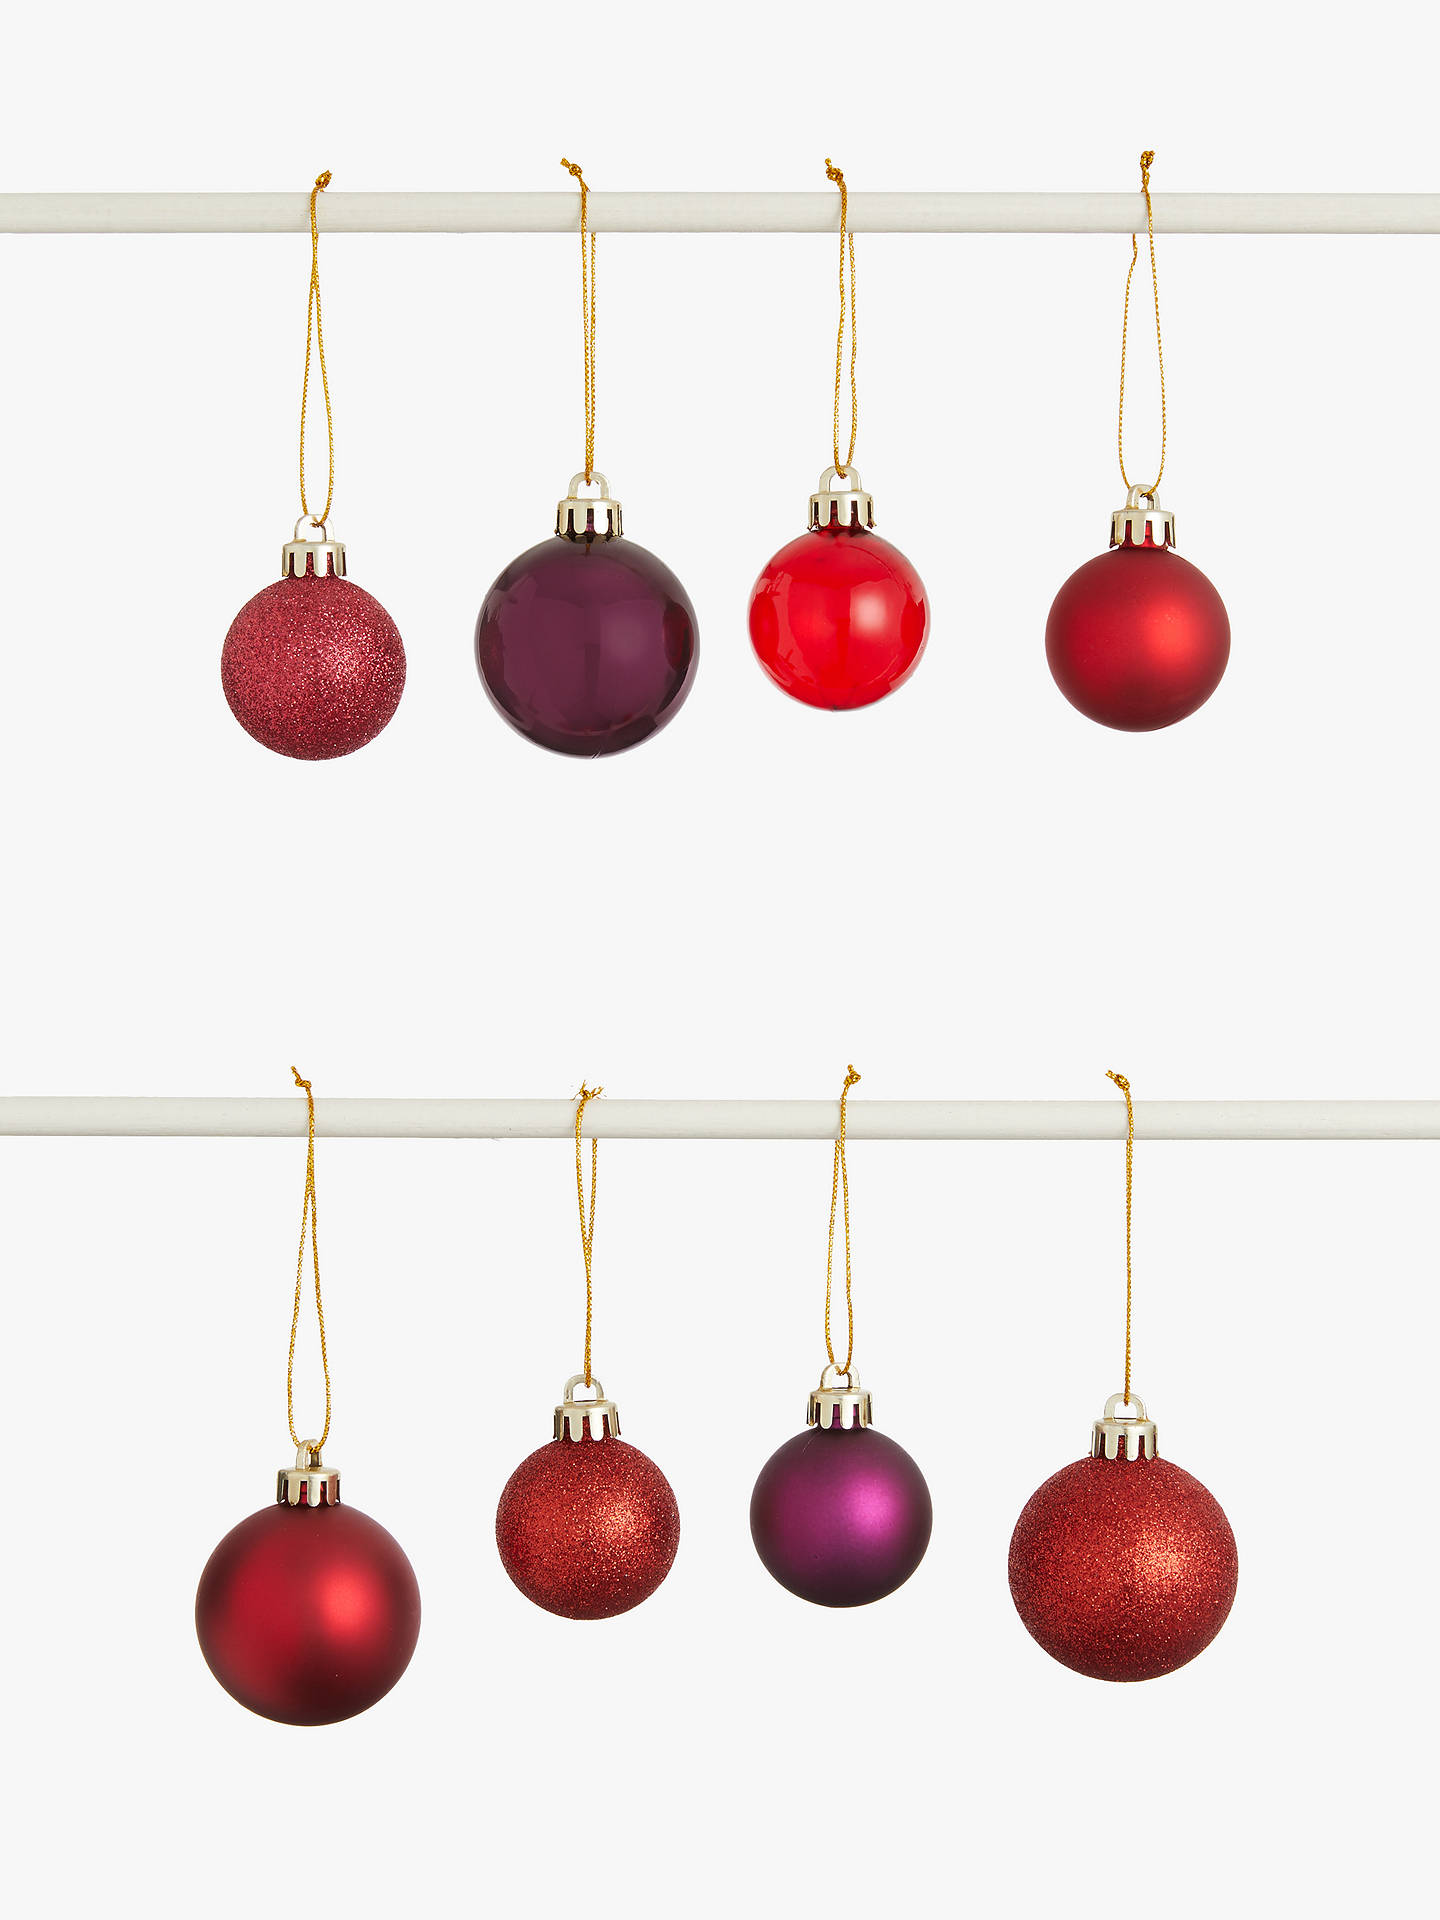 Buy John Lewis & Partners Traditions Shatterproof Assorted Baubles, Tub of 100, Red Online at johnlewis.com